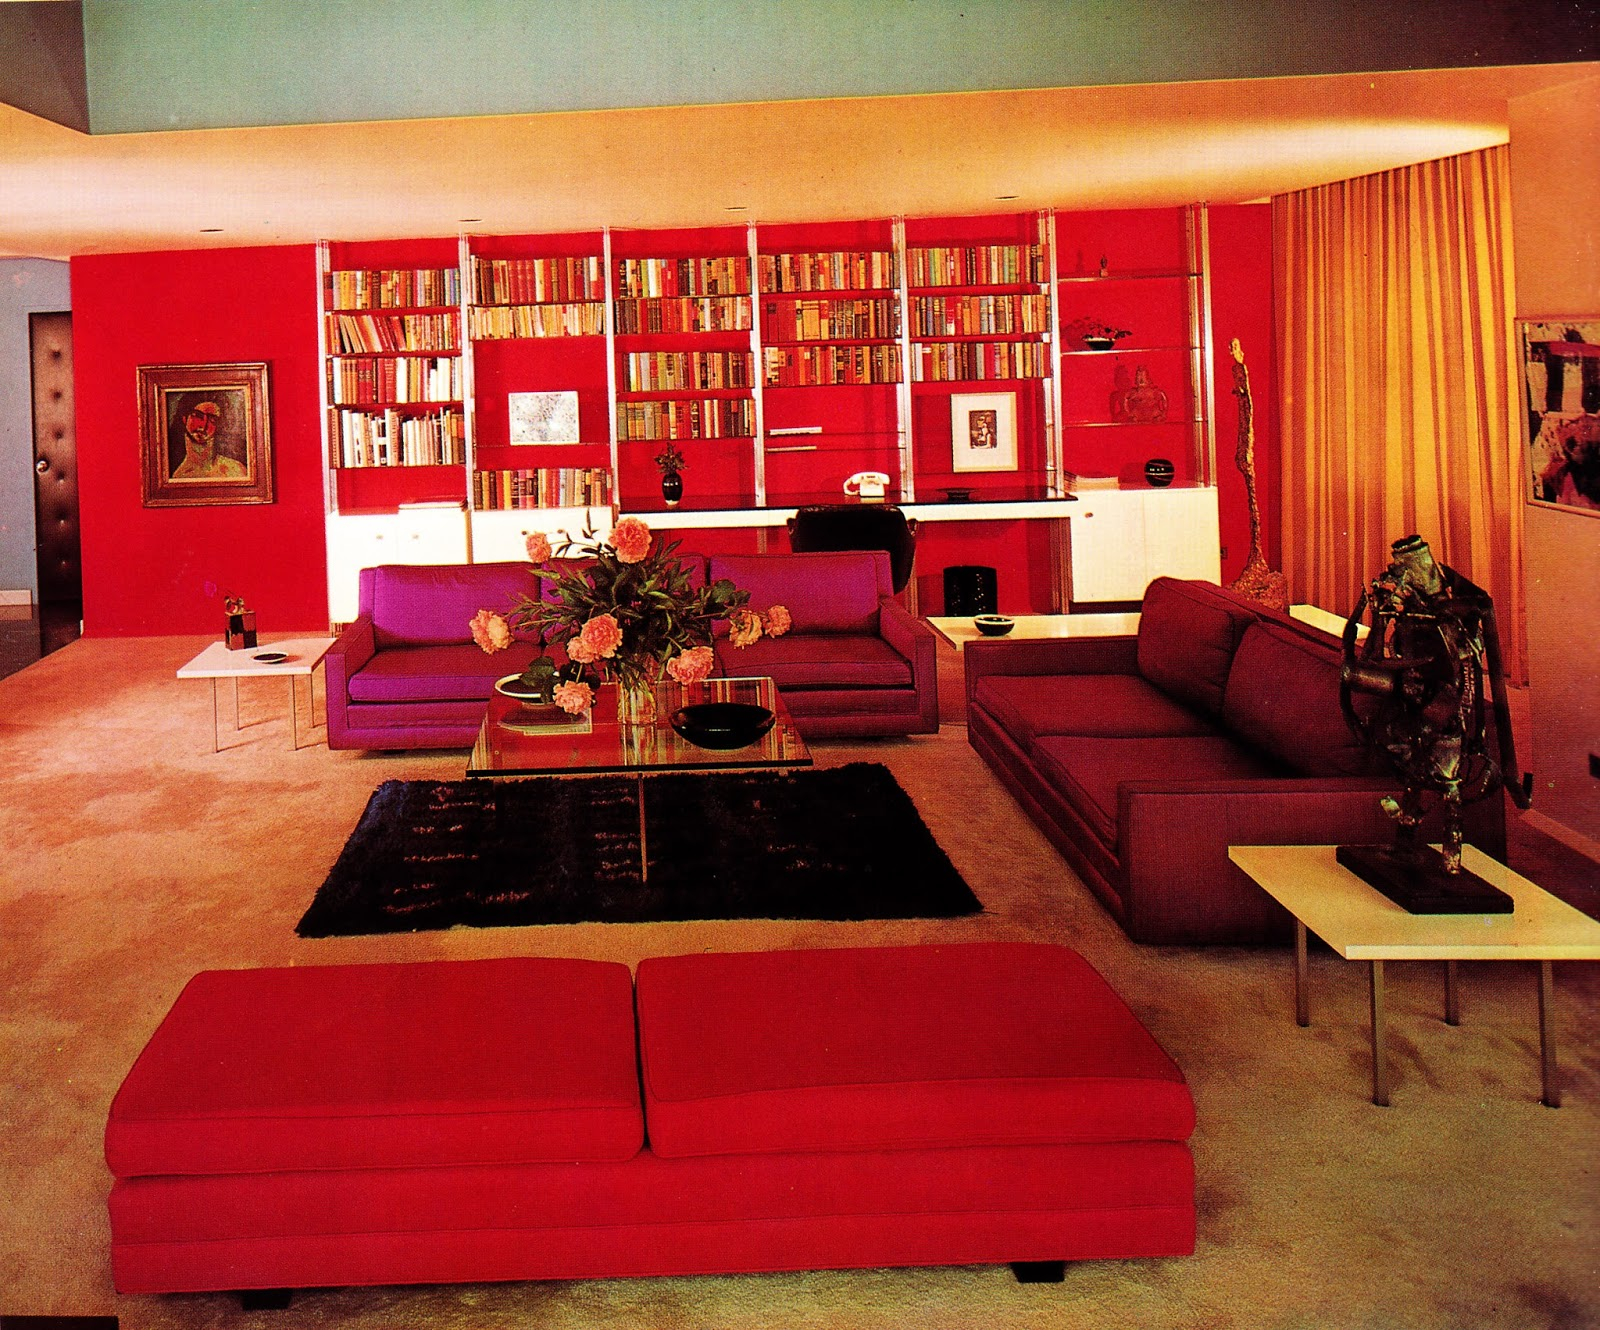 1960s Interior D 233 Cor The Decade Of Psychedelia Gave Rise